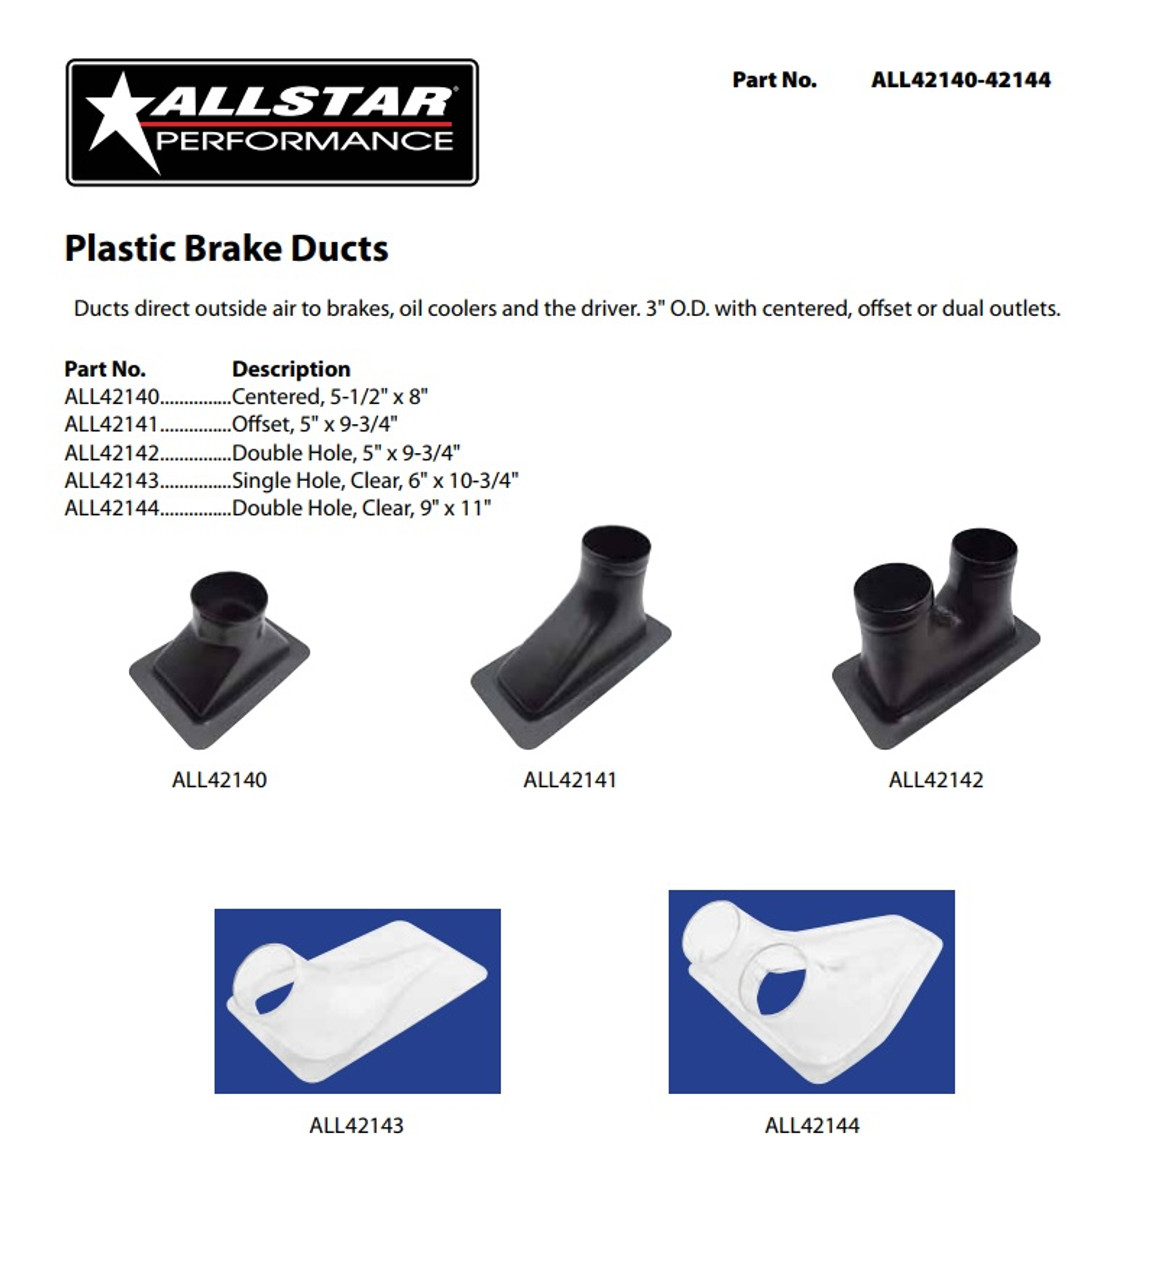 "Clear Allstar ALL42144 Plastic Brake Duct Double Hole 9/"" x 11/"""